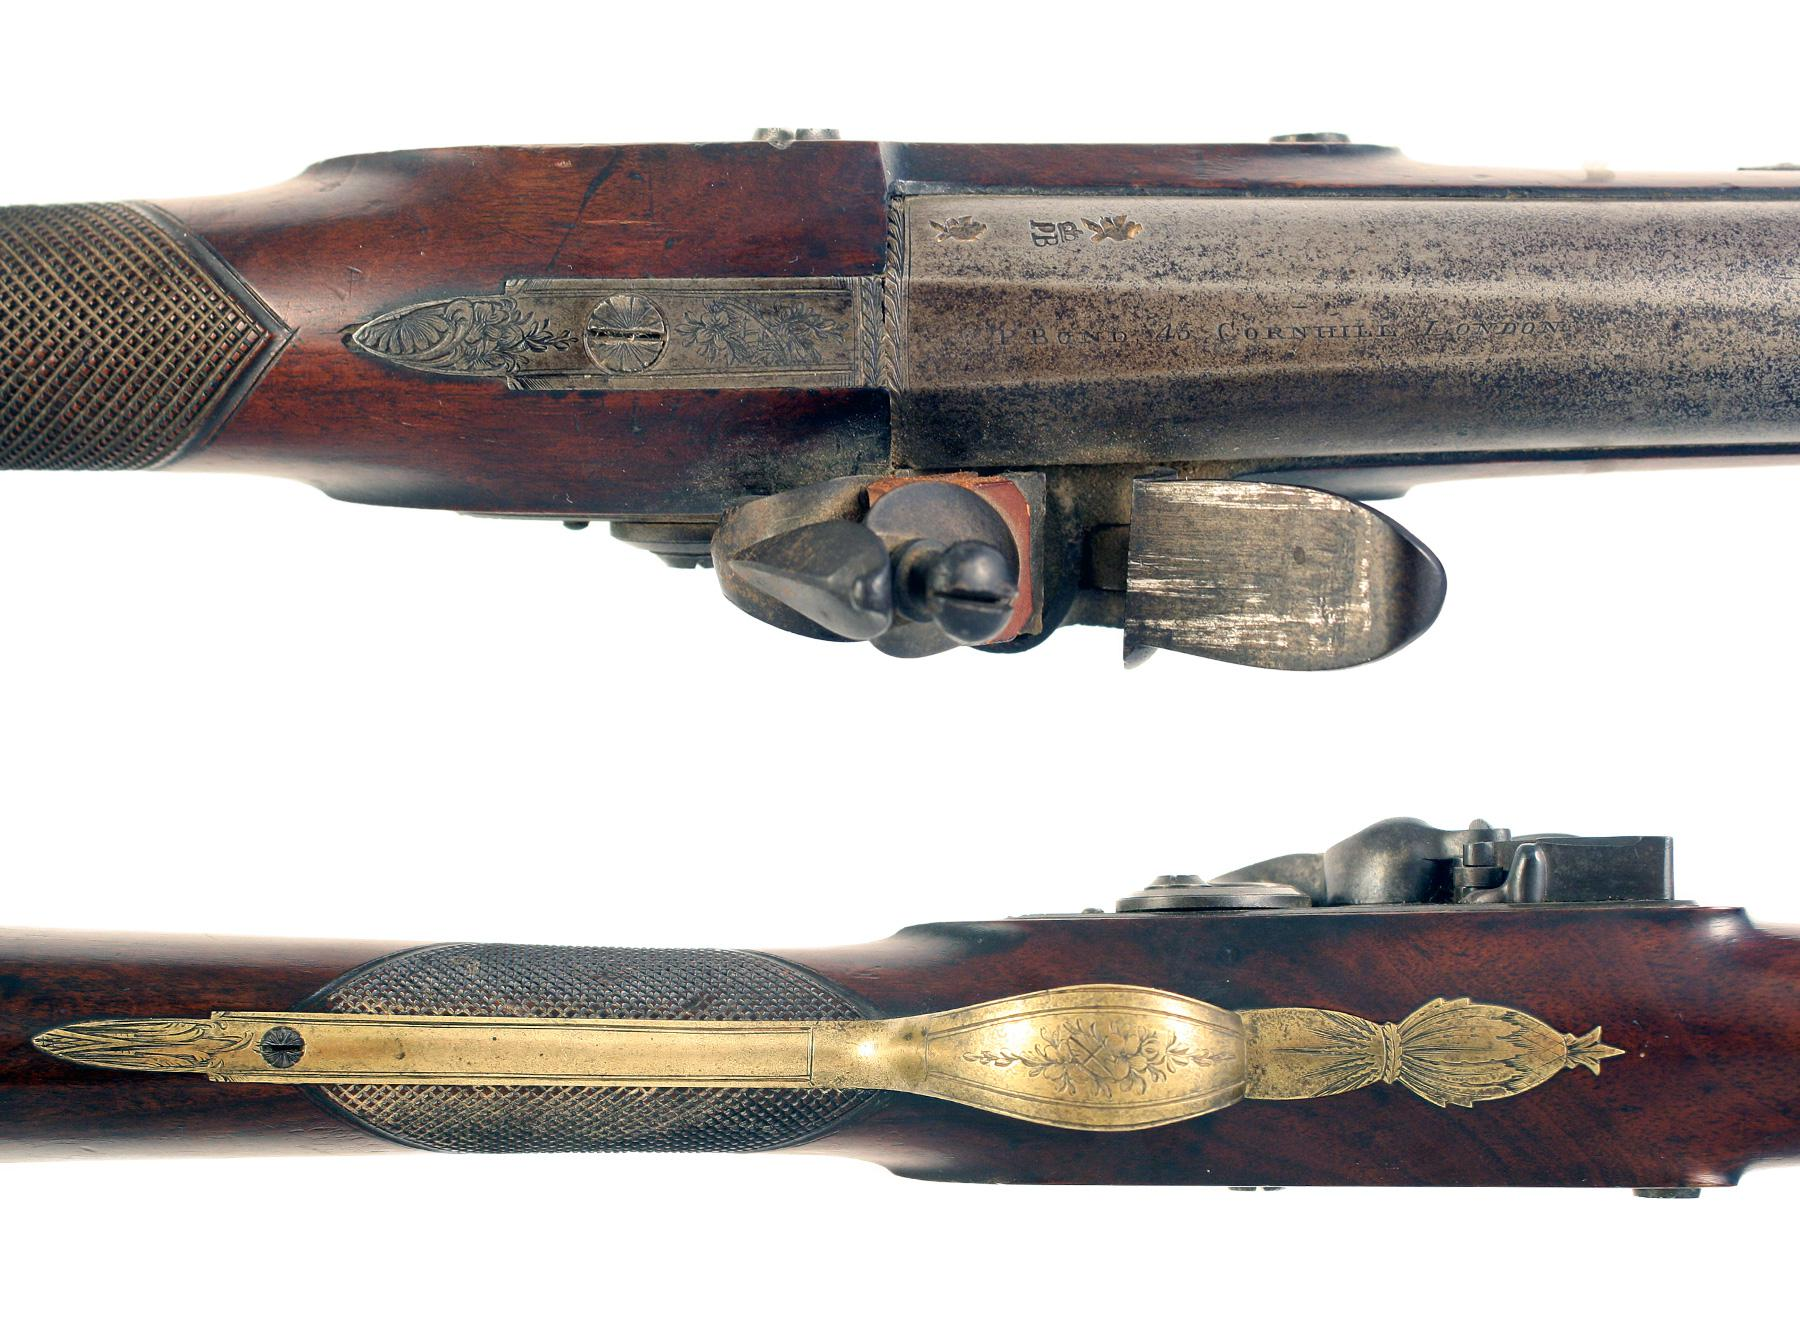 A Sleepy Flintlock Blunderbuss by P. Bond